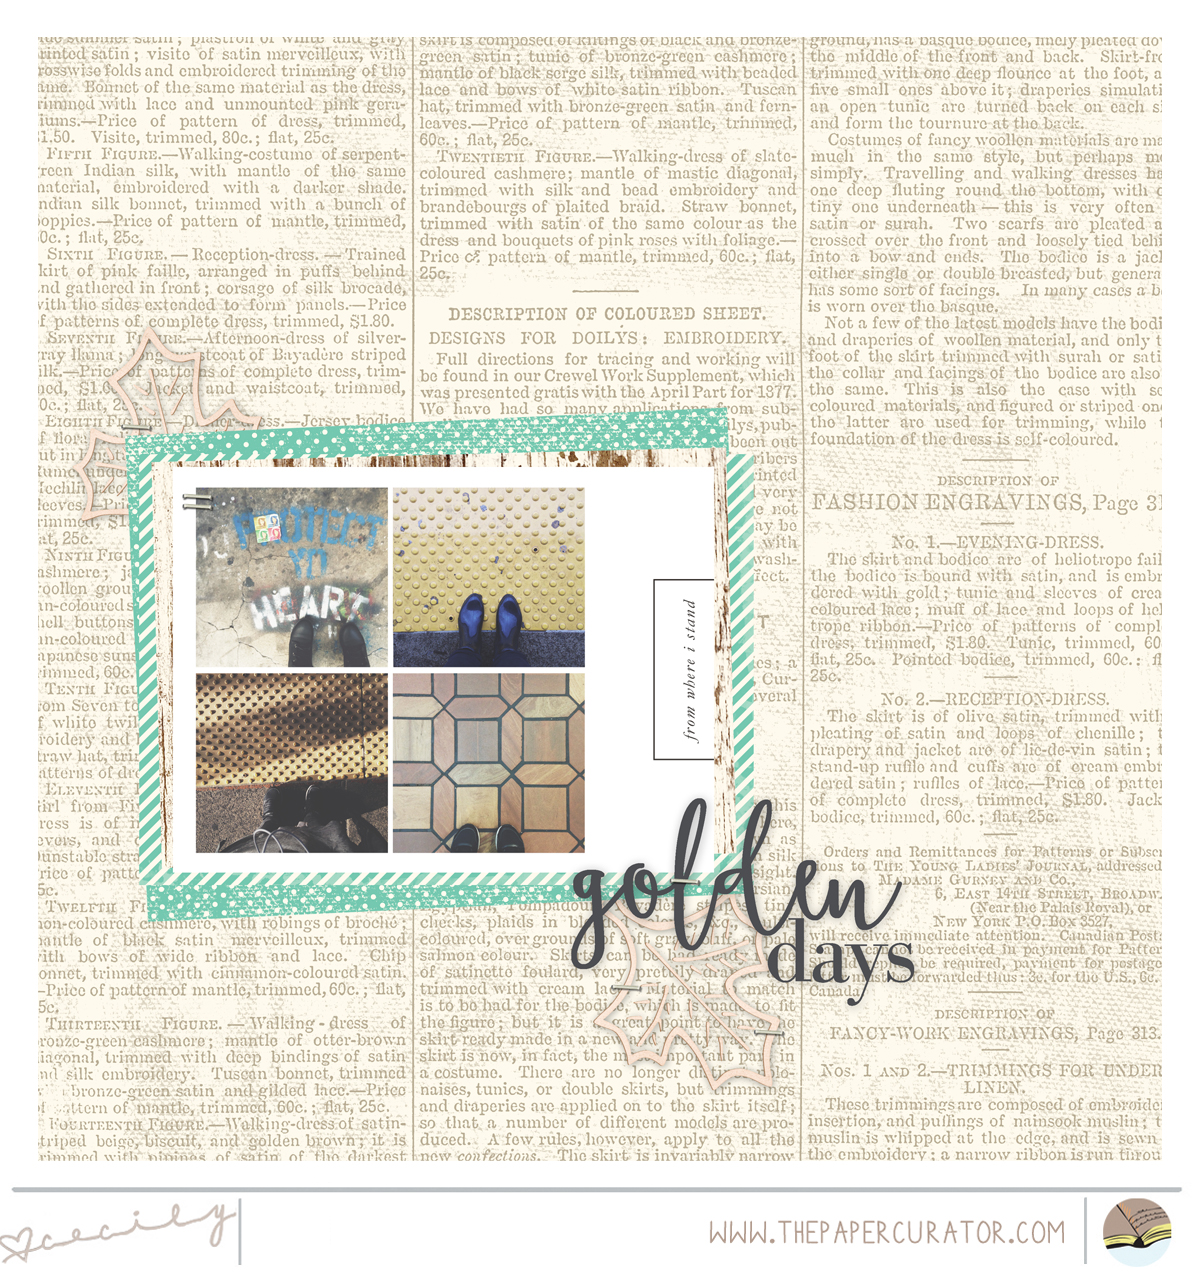 USING TEMPLATES TO COMBINE THEMED PHOTOS | THE PAPER CURATOR